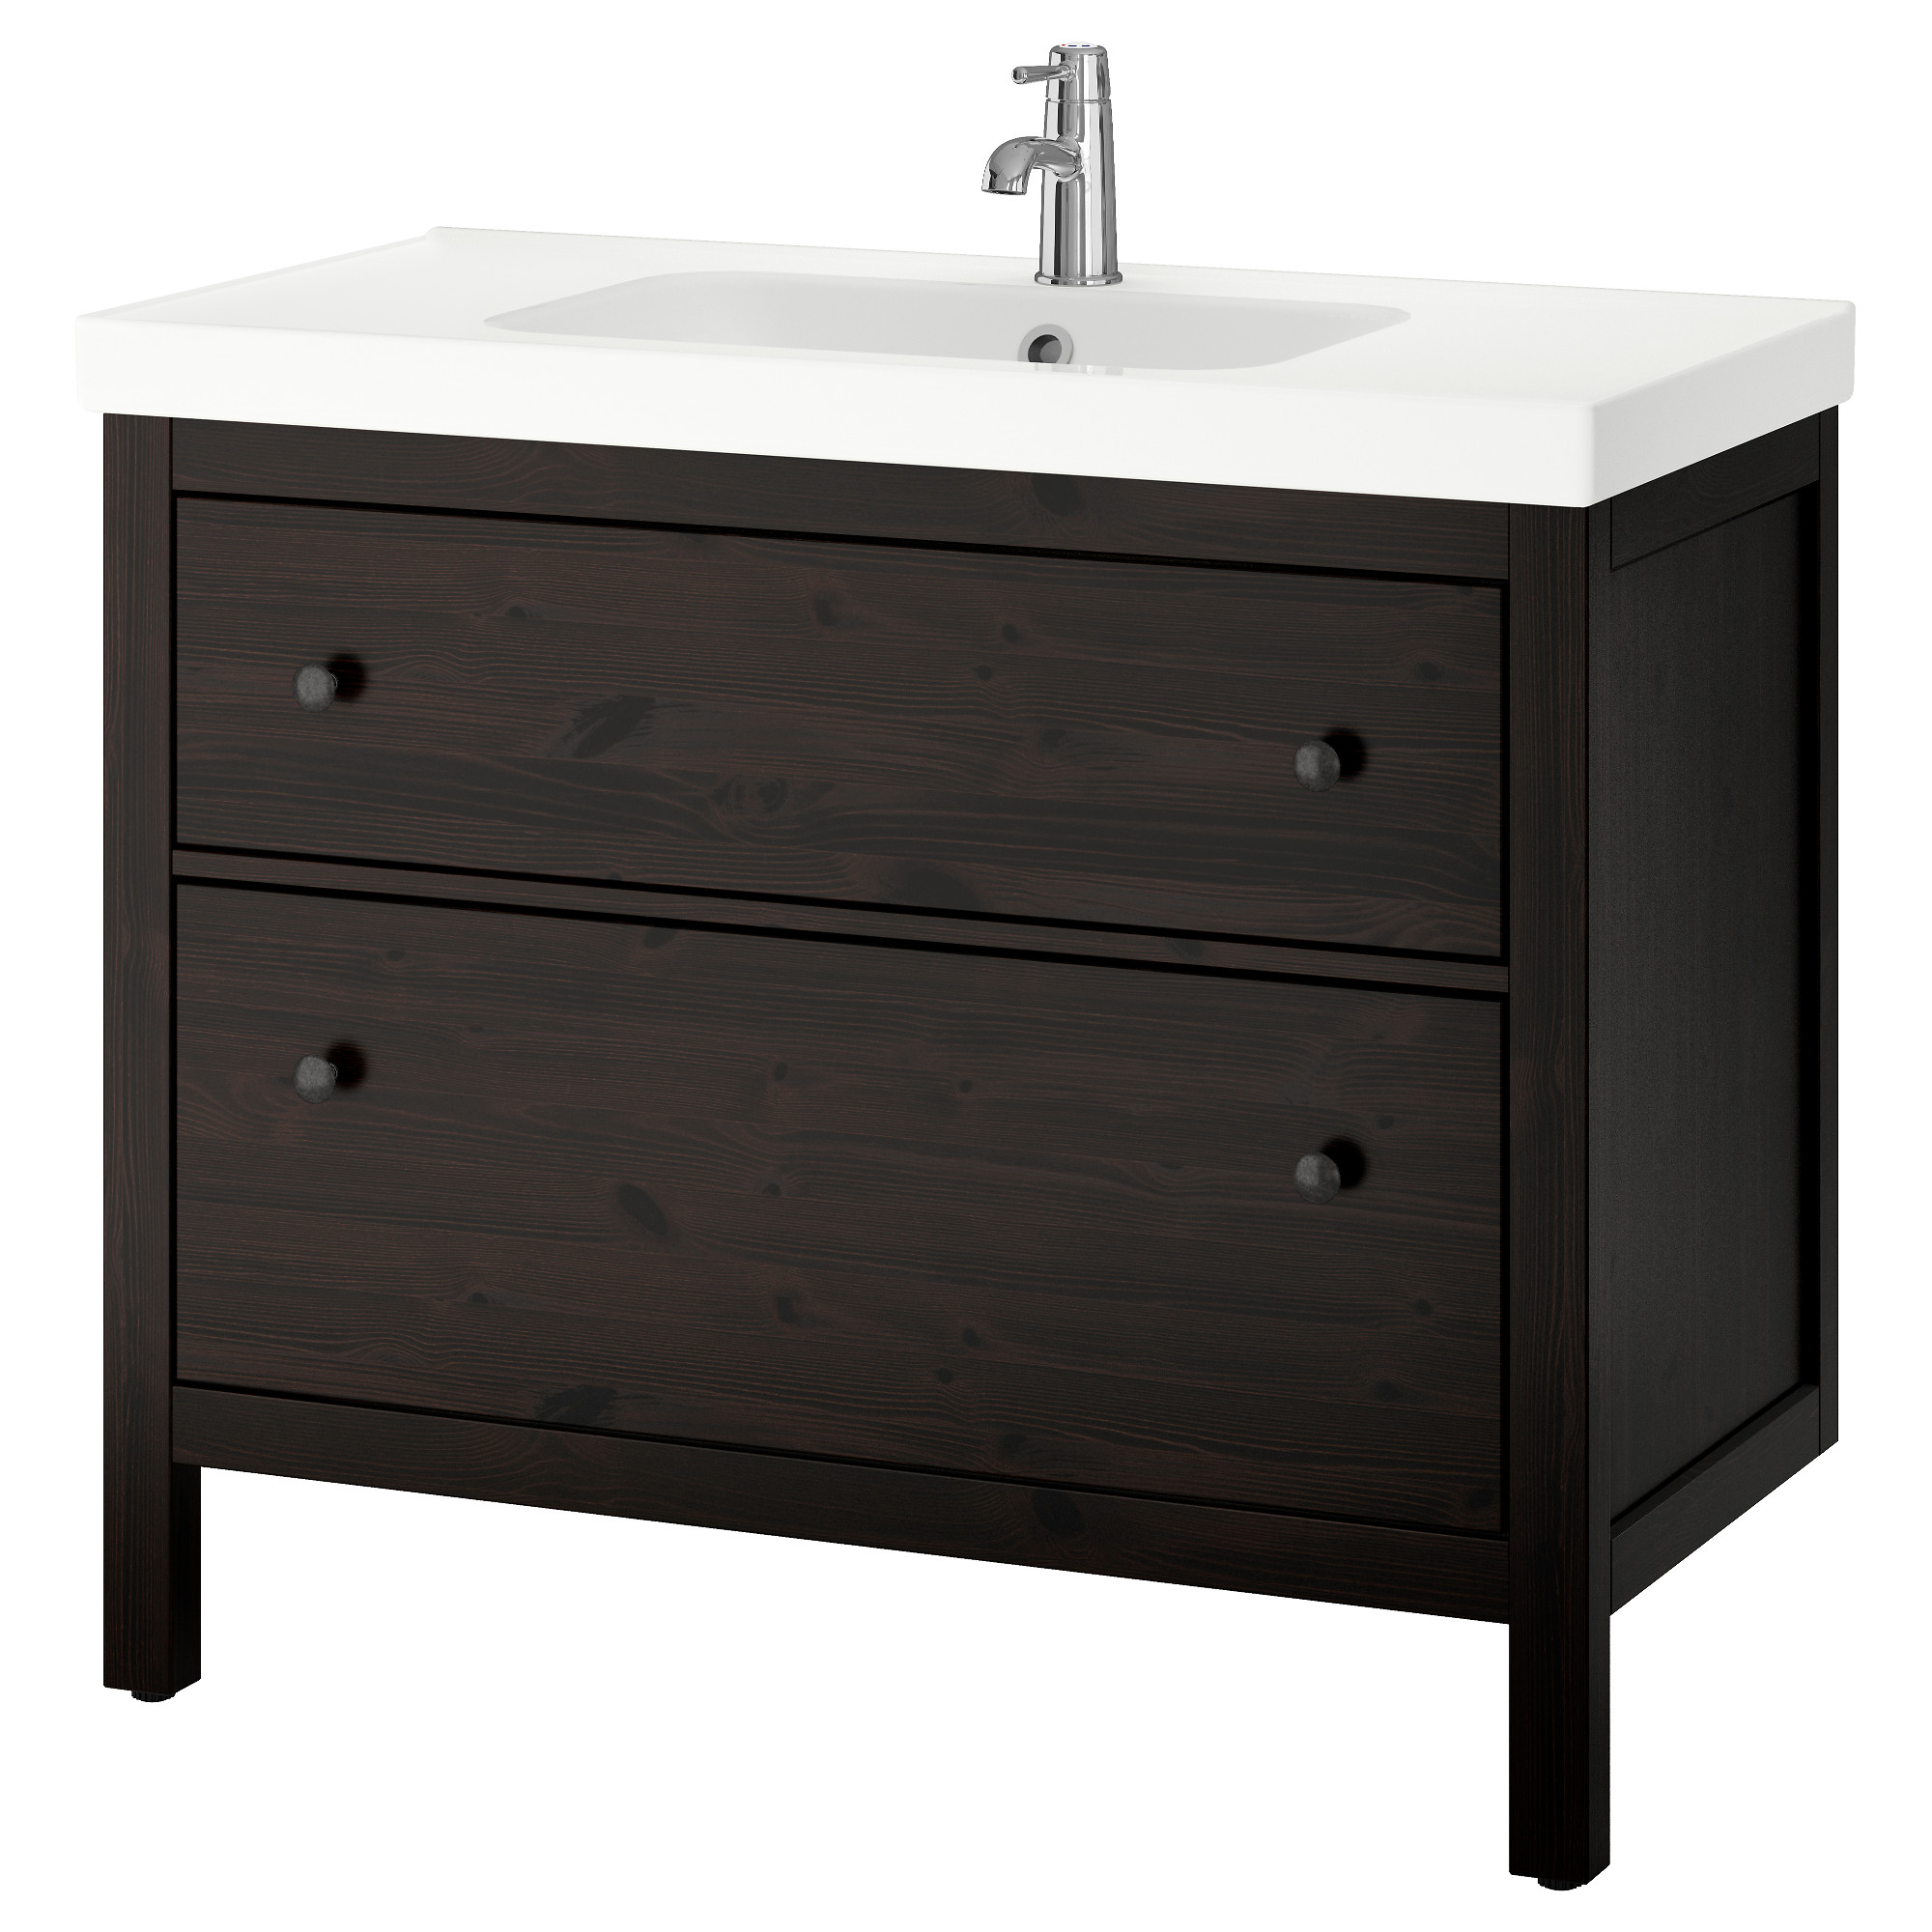 Bathroom Vanities & Countertops IKEA